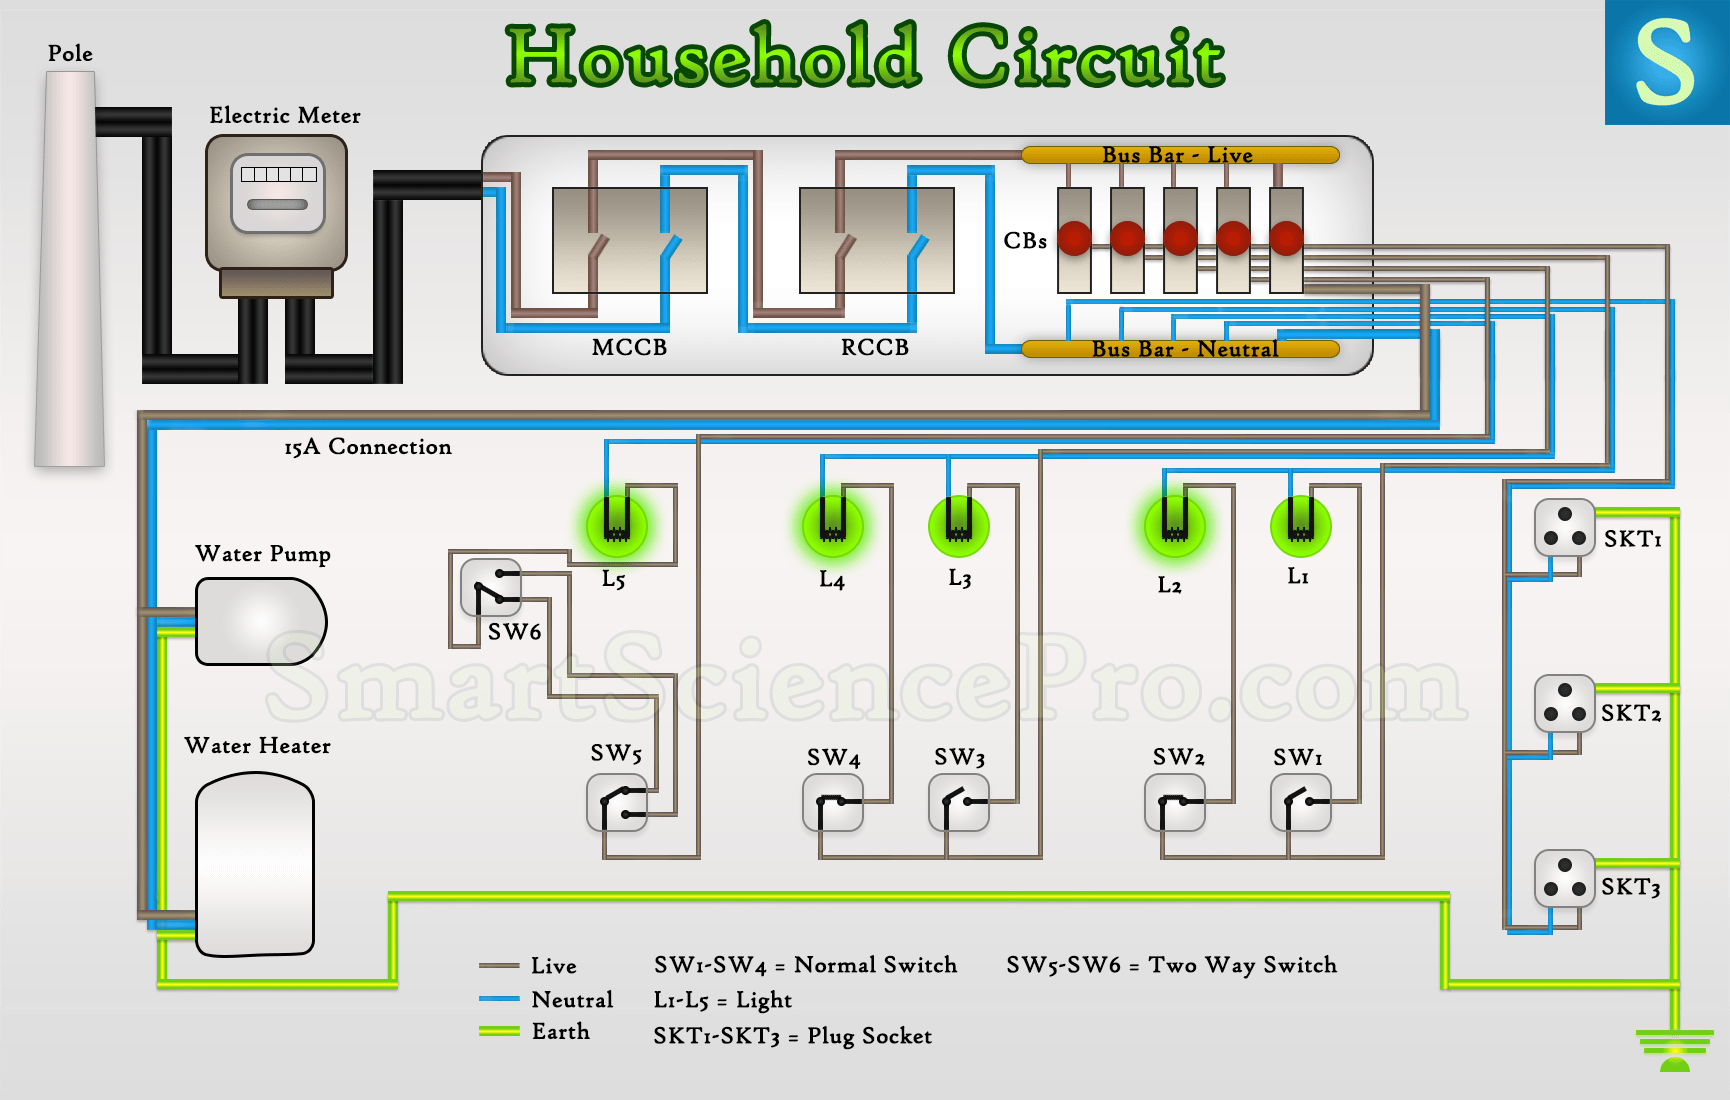 Fabulous A Typical House Electrical Wiring In Wiring Diagram Wiring Cloud Inamadienstapotheekhoekschewaardnl